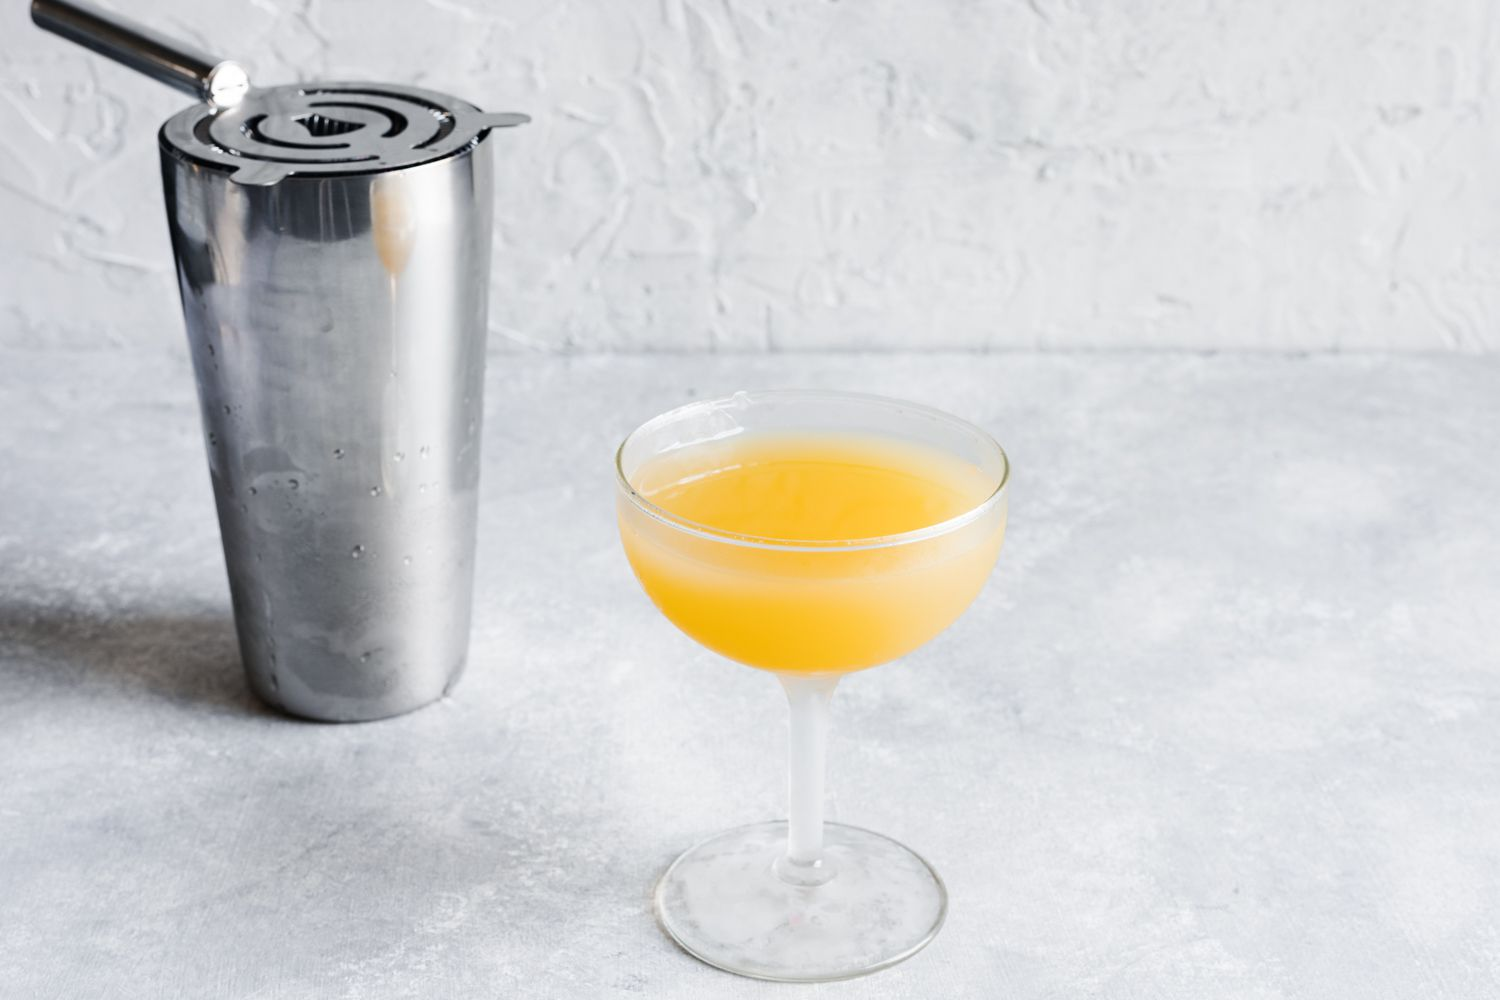 Strain cocktail into a chilled cocktail glass